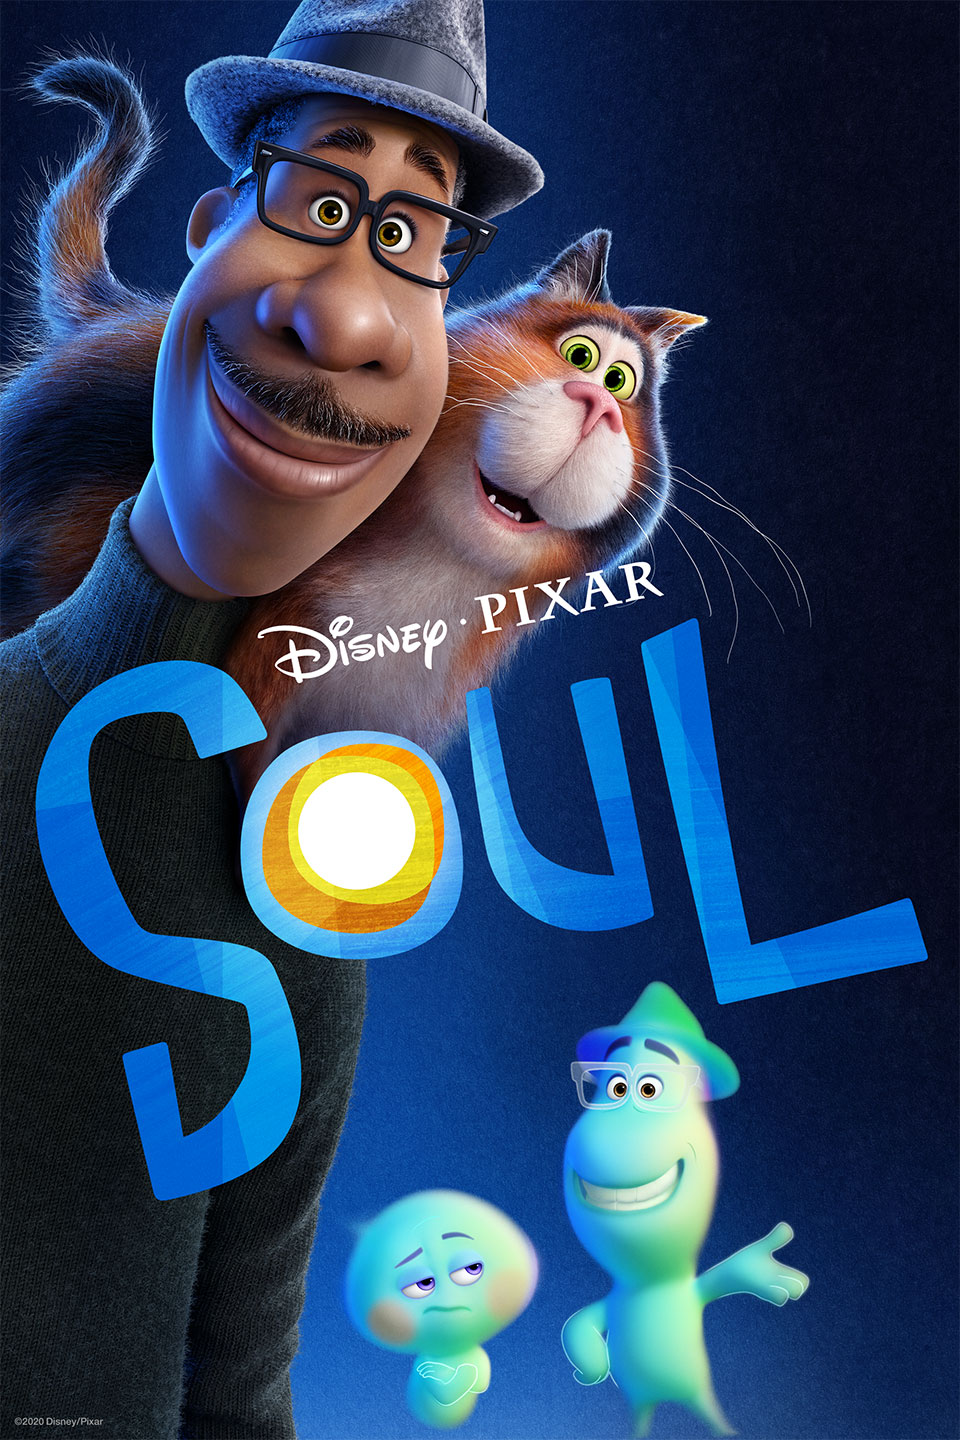 Disney & Pixar's Soul is now available on Blu-ray, DVD, 4K Ultra & Digital (Giveaway ends April 10, 2021)